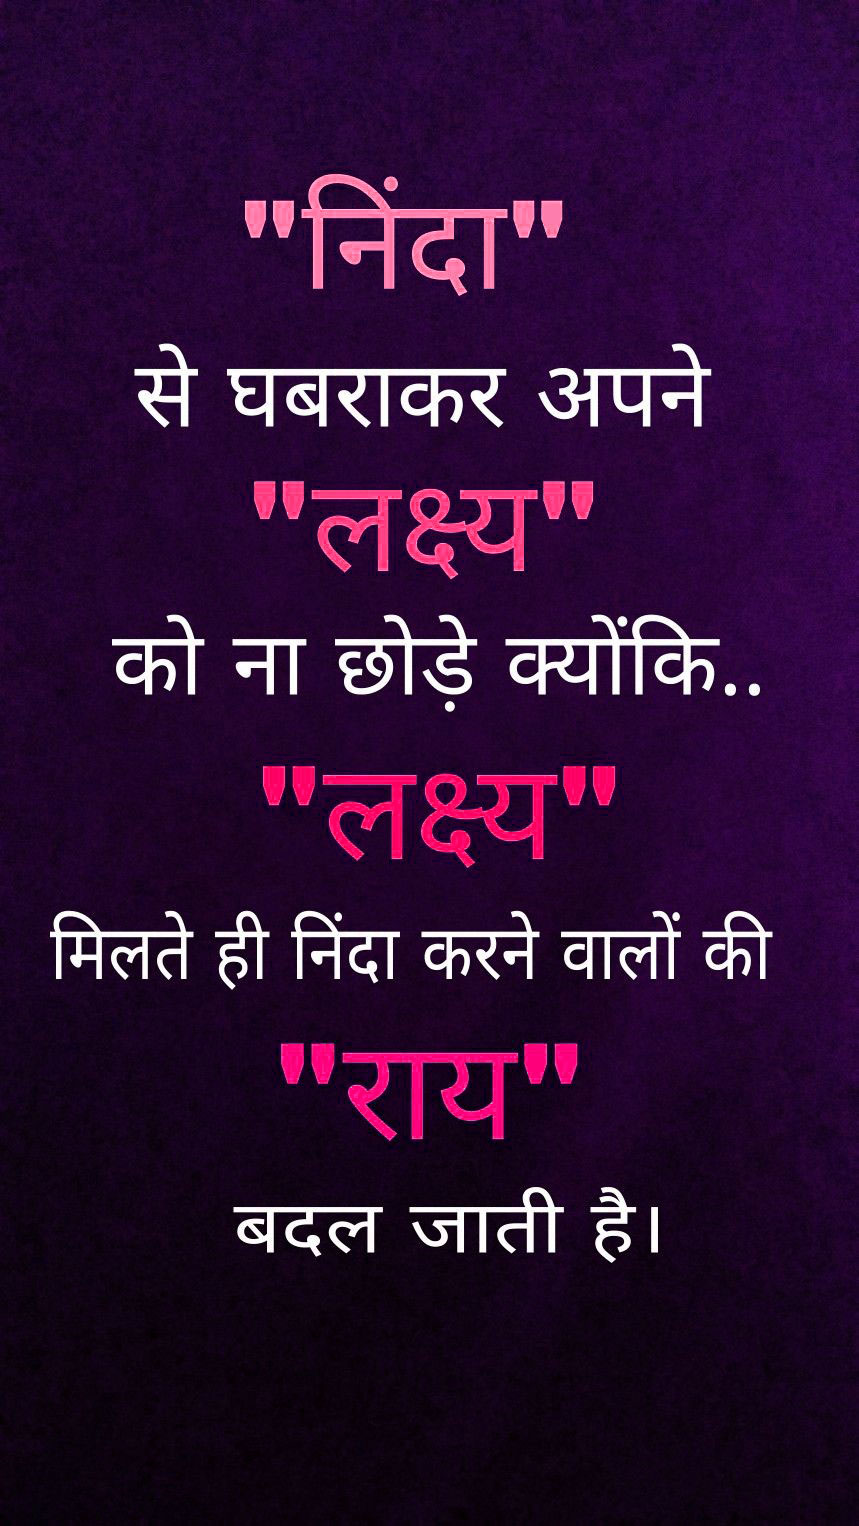 Hindi Motivational Quotes Pics Pictures